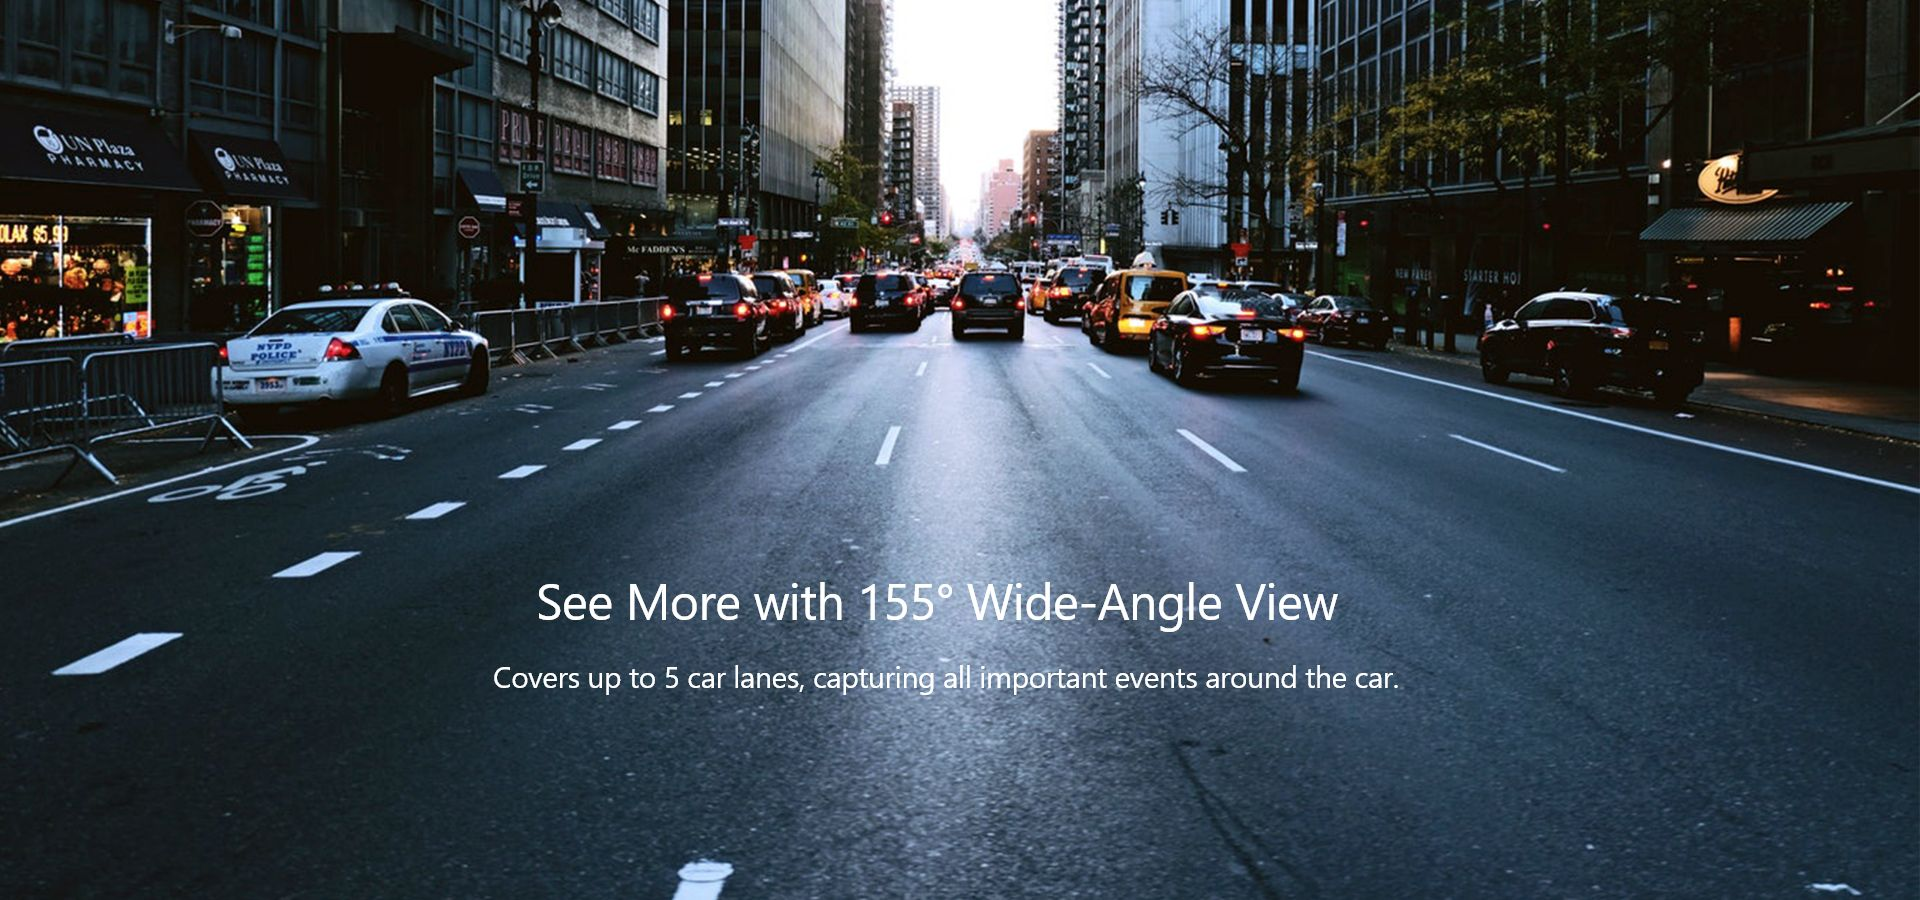 150 degree wide-angle view